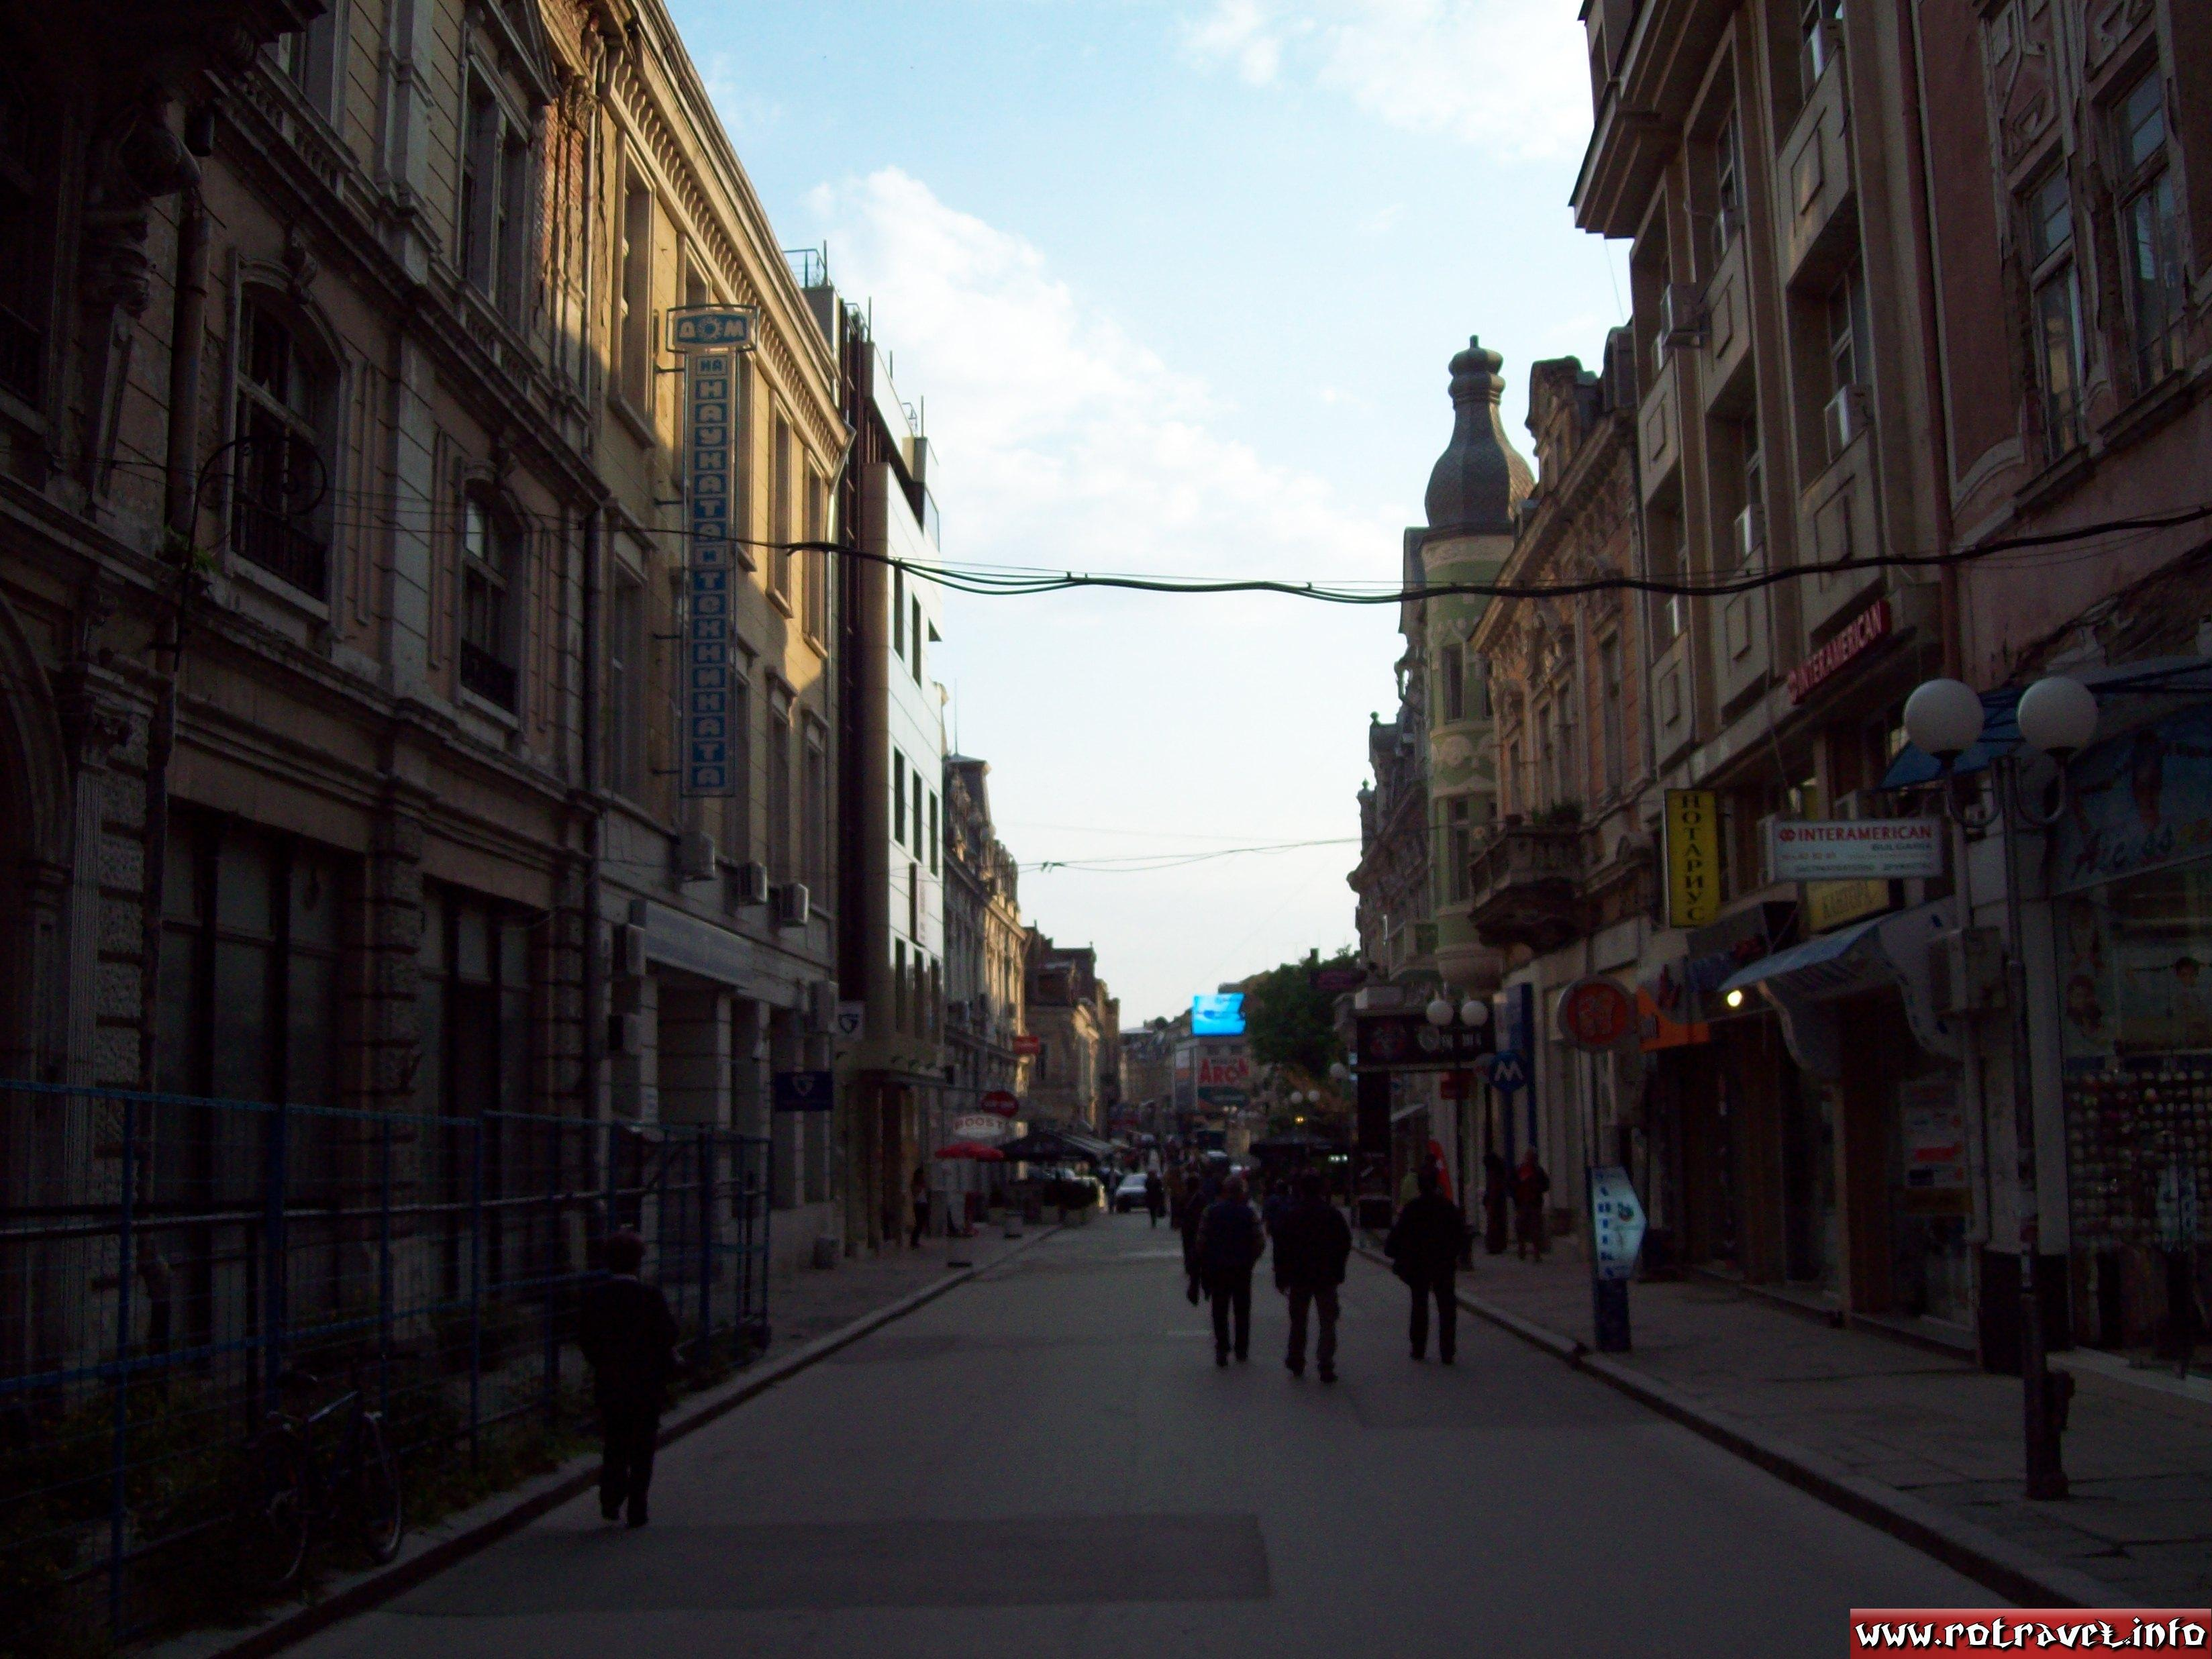 A nice street in the old centre